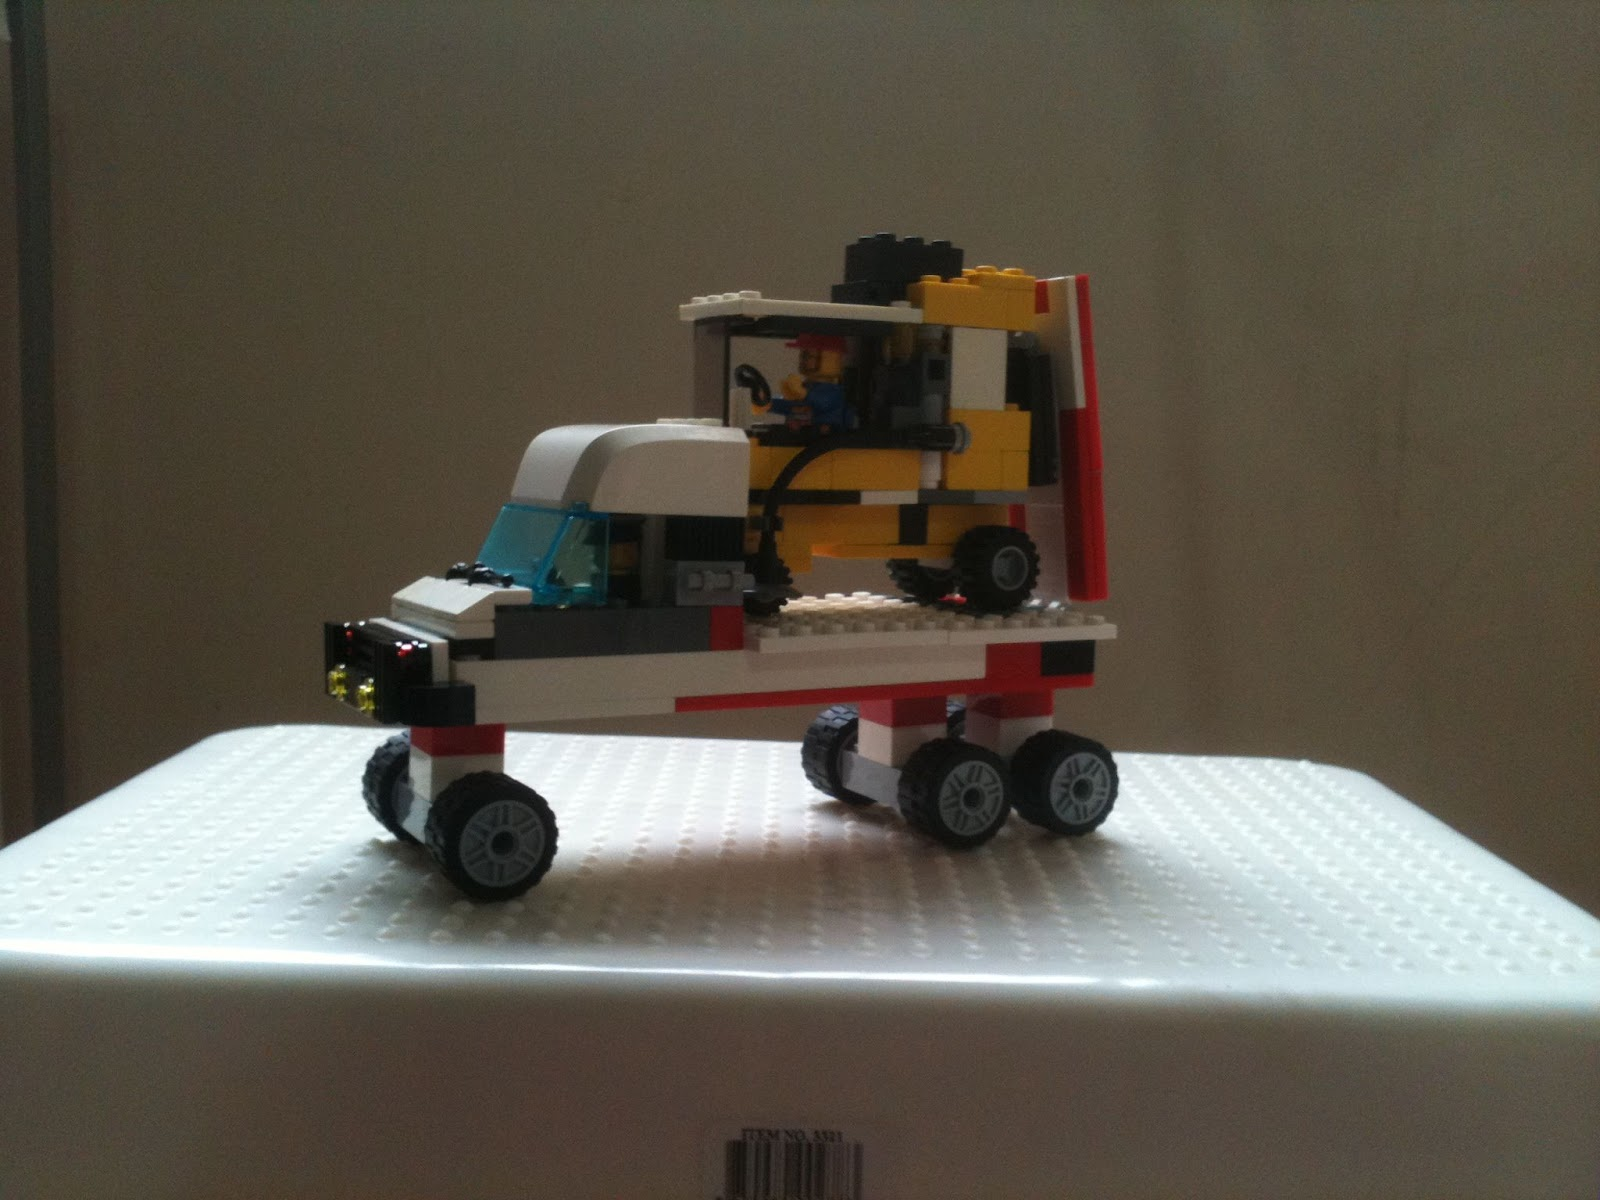 Ace Swan Blog: Lego flatbed truck - 183.5KB